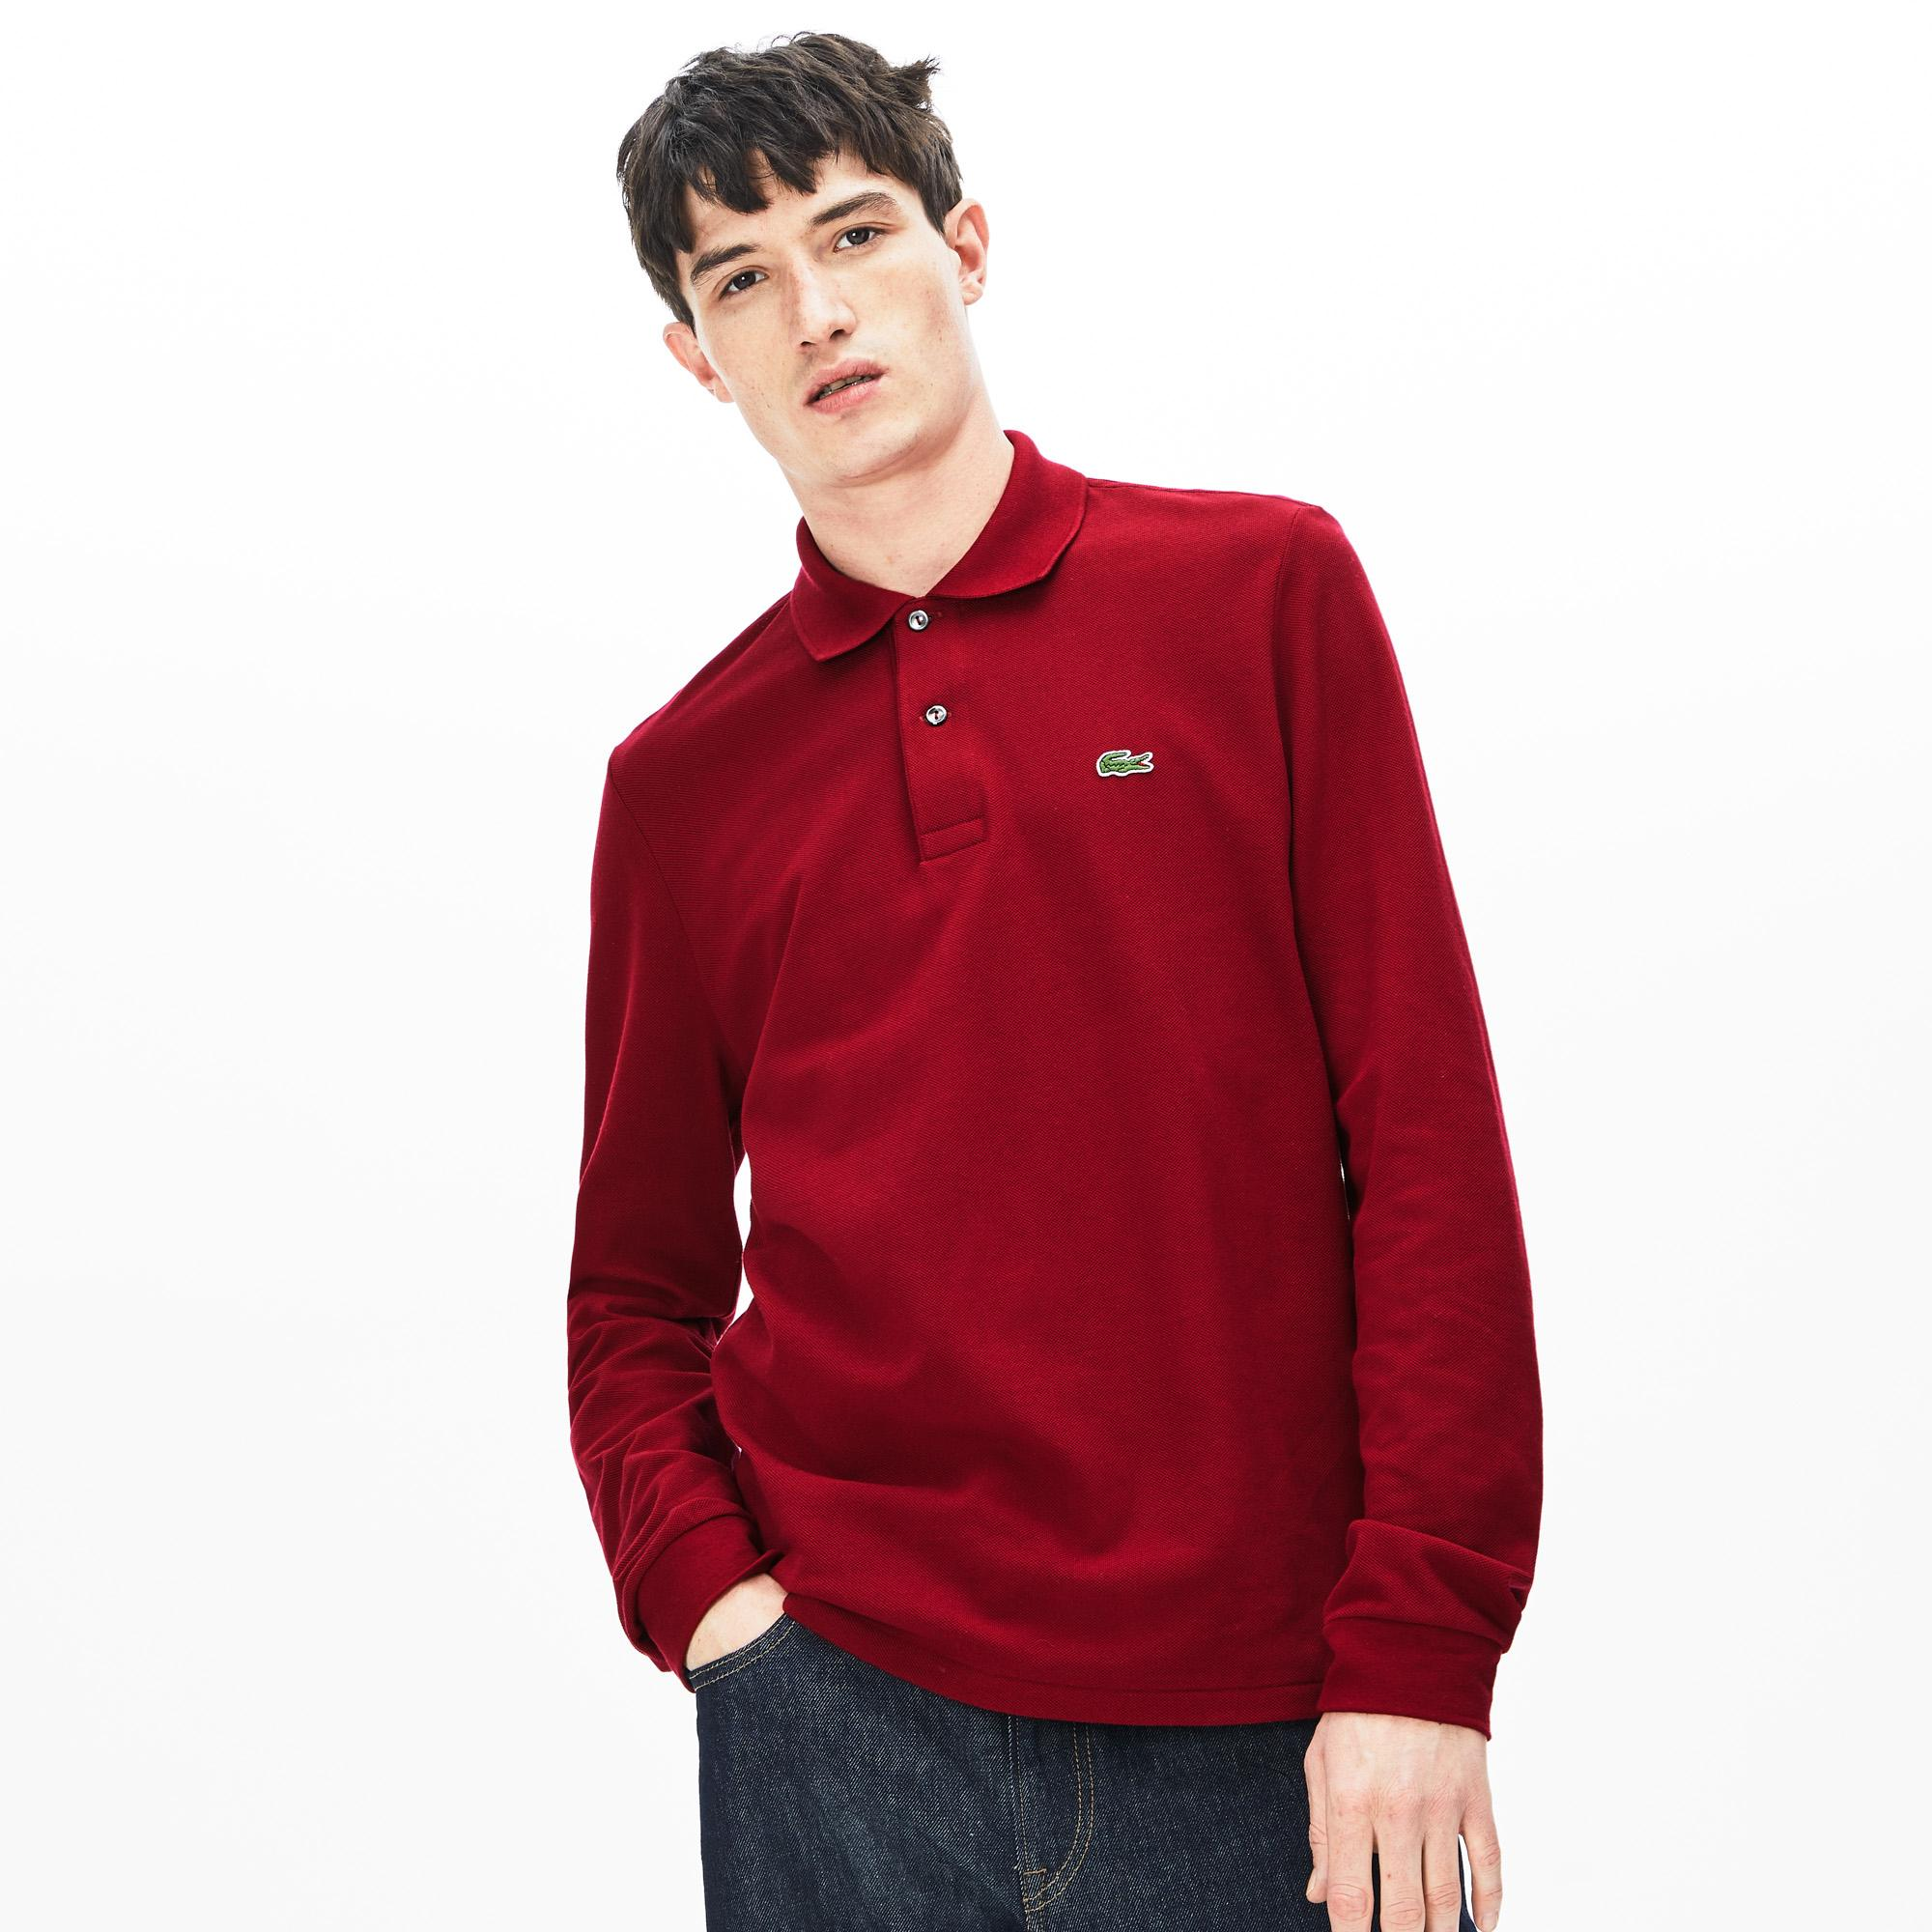 Lacoste Men's Long-Sleeve Classic Fit L.13.12 Polo